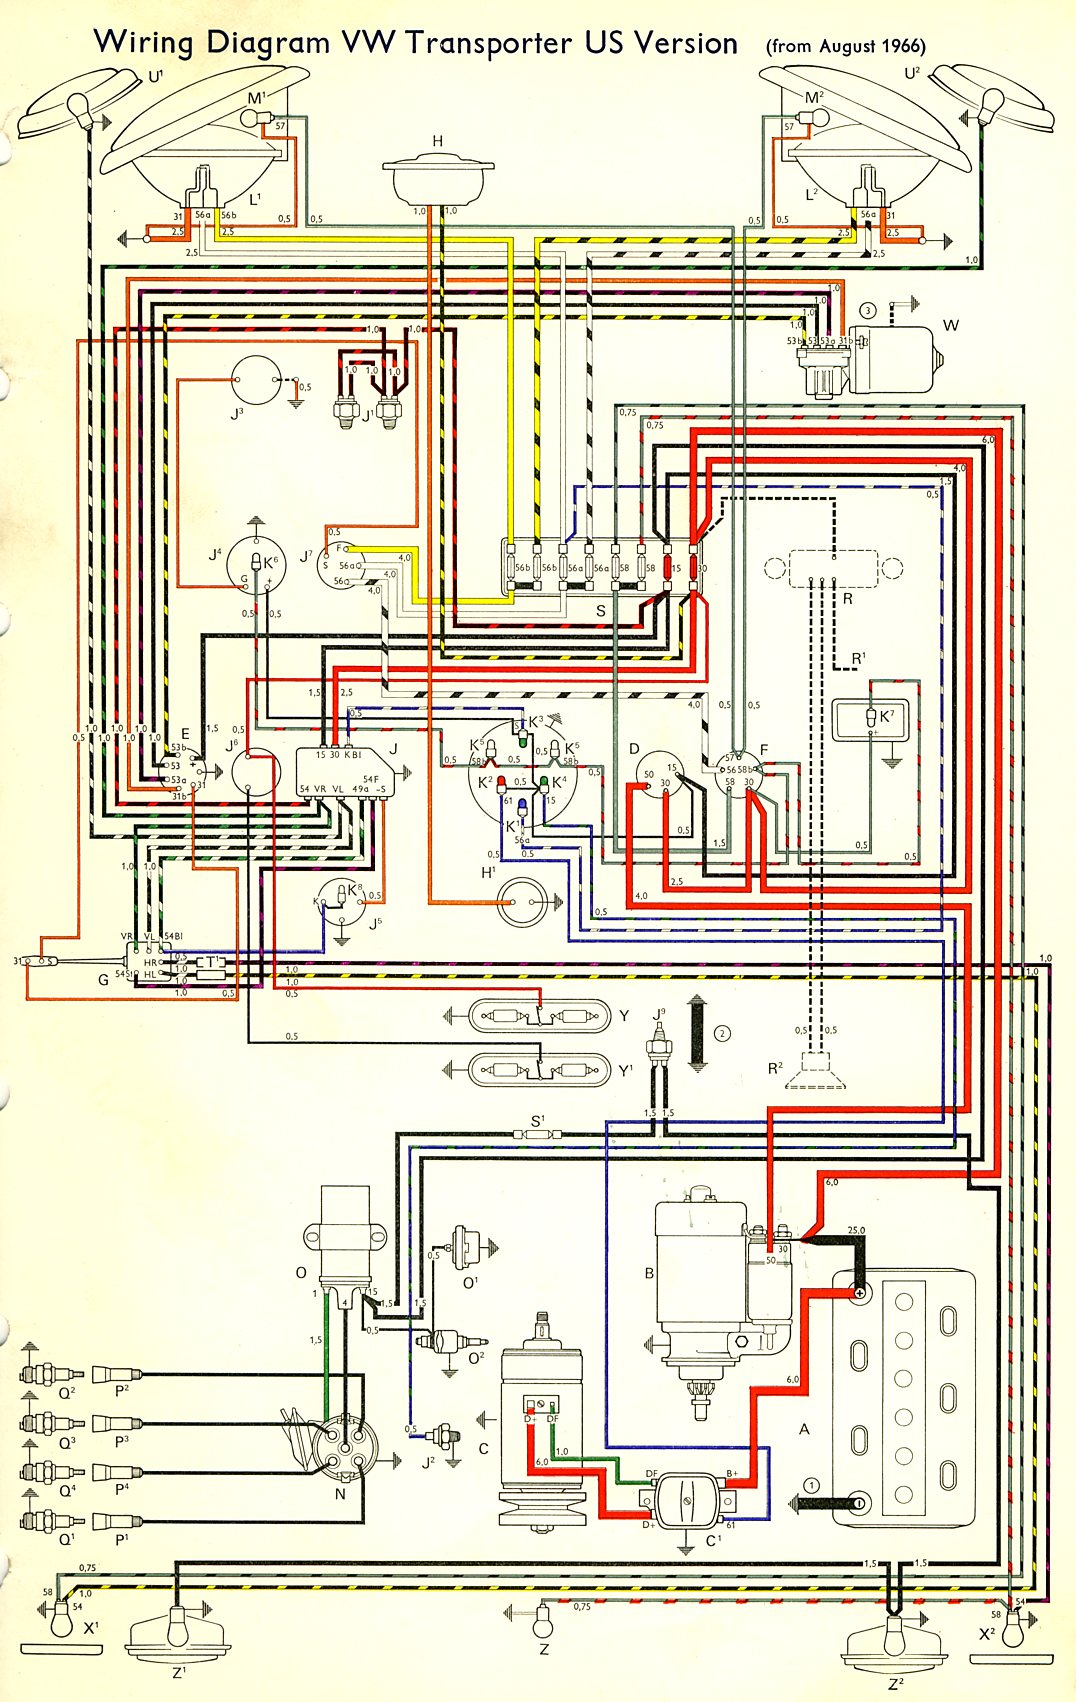 bus_67_USA 1967 bus wiring diagram (usa) thegoldenbug com 74 vw bus wiring diagram at nearapp.co